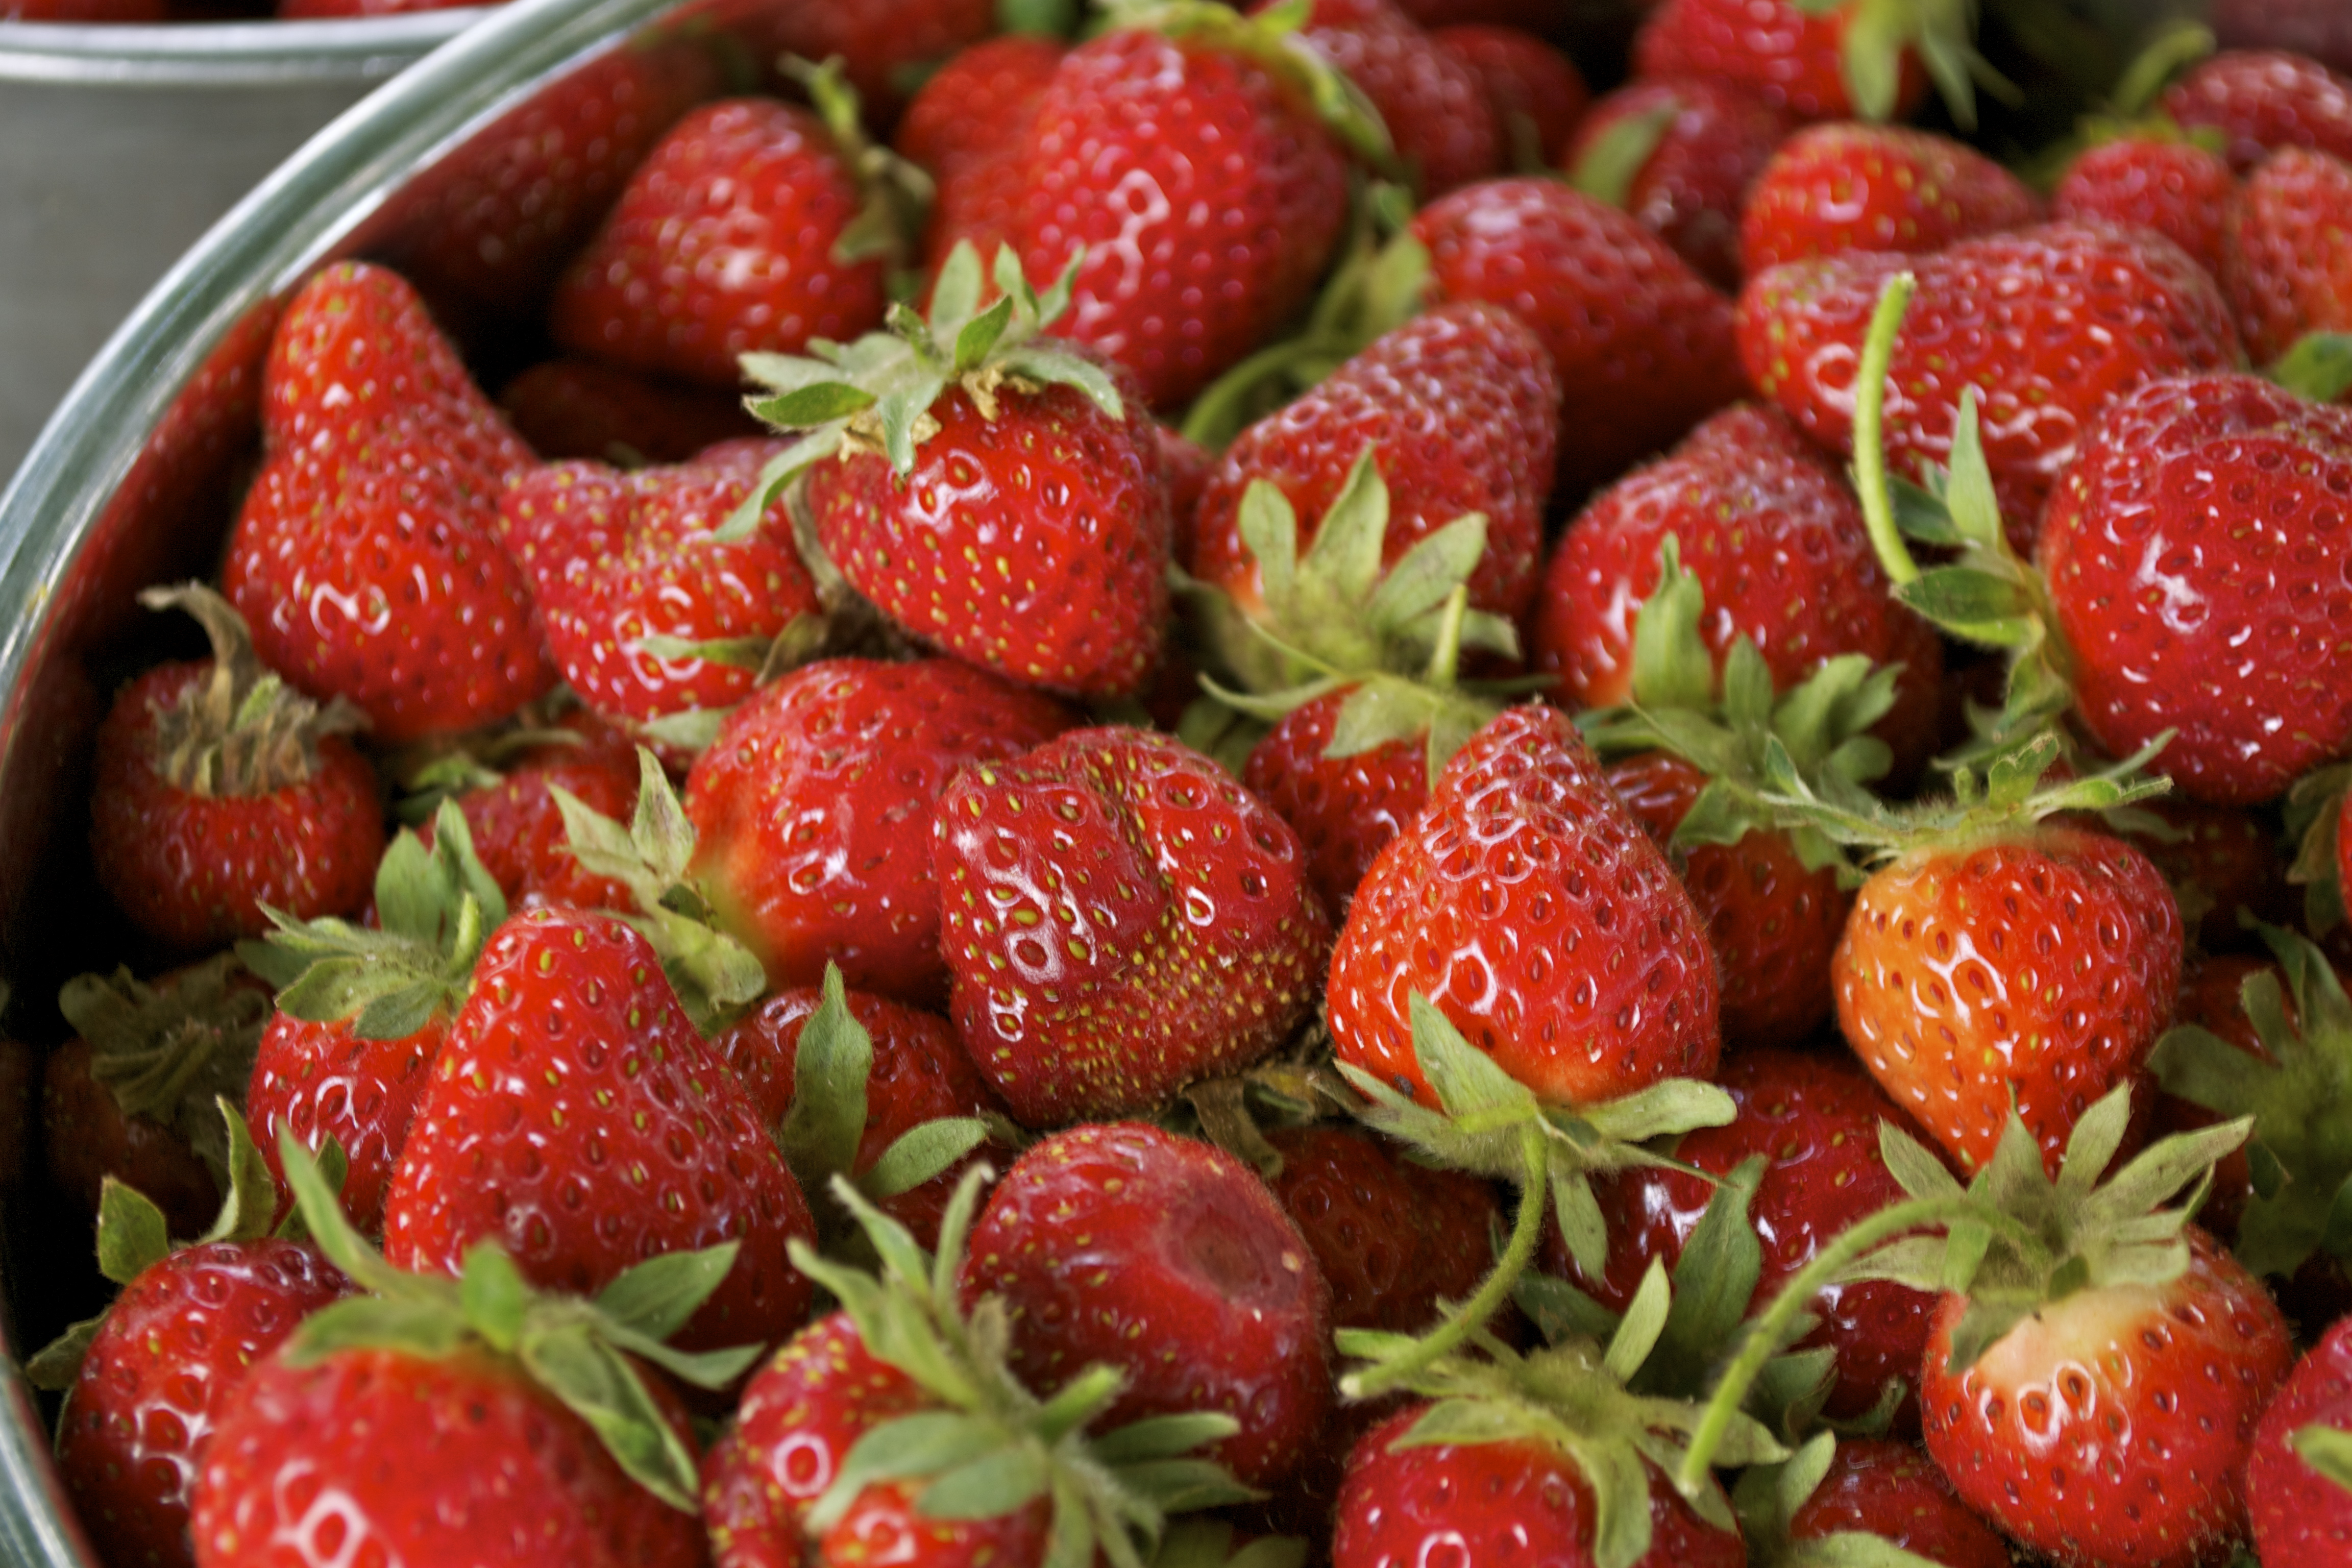 Organic Durban Strawberry Seeds - 25 Count